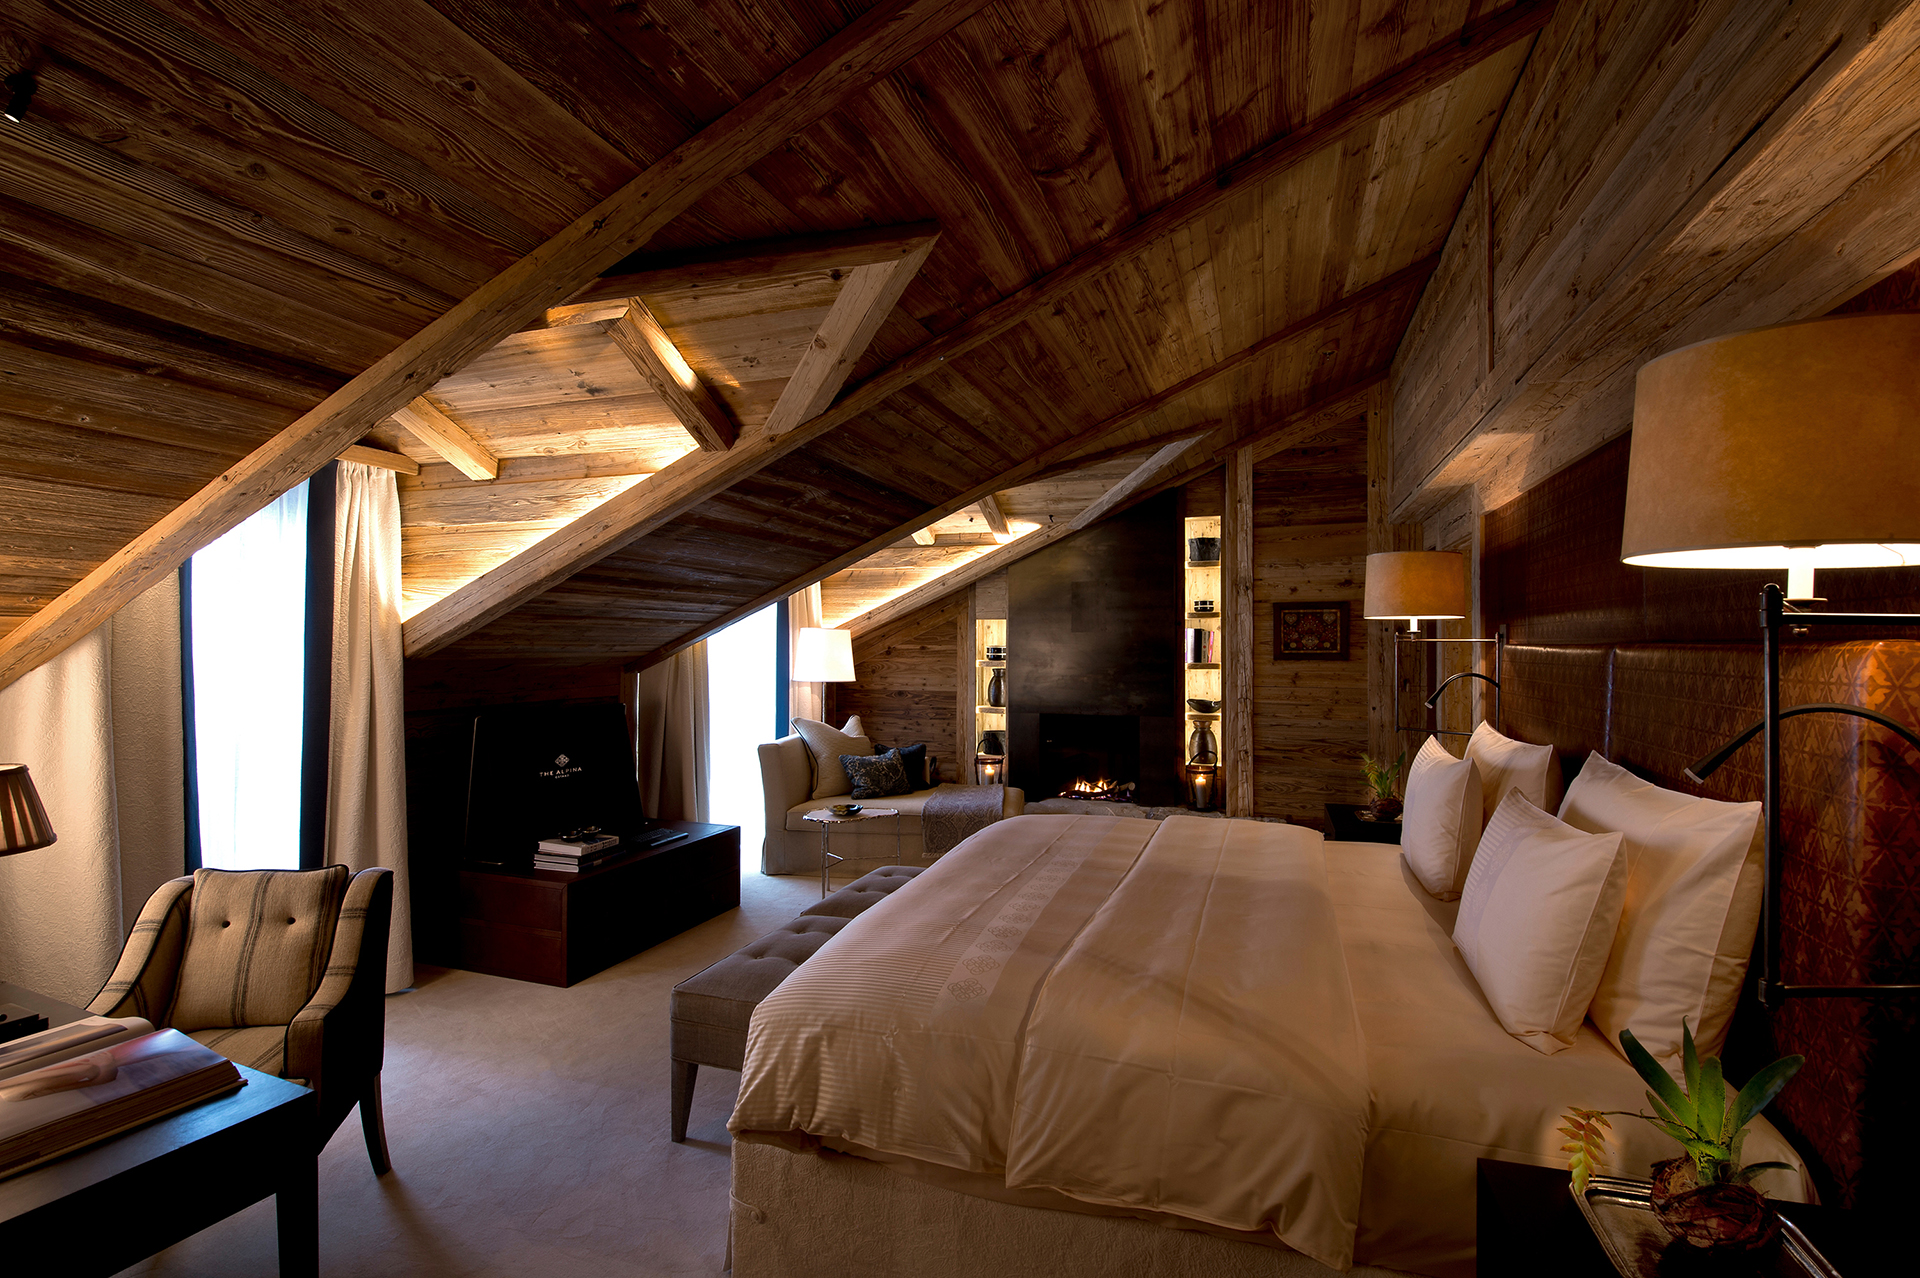 TheAlpinaGstaad_Rooms&Suites_0151_1920.jpg